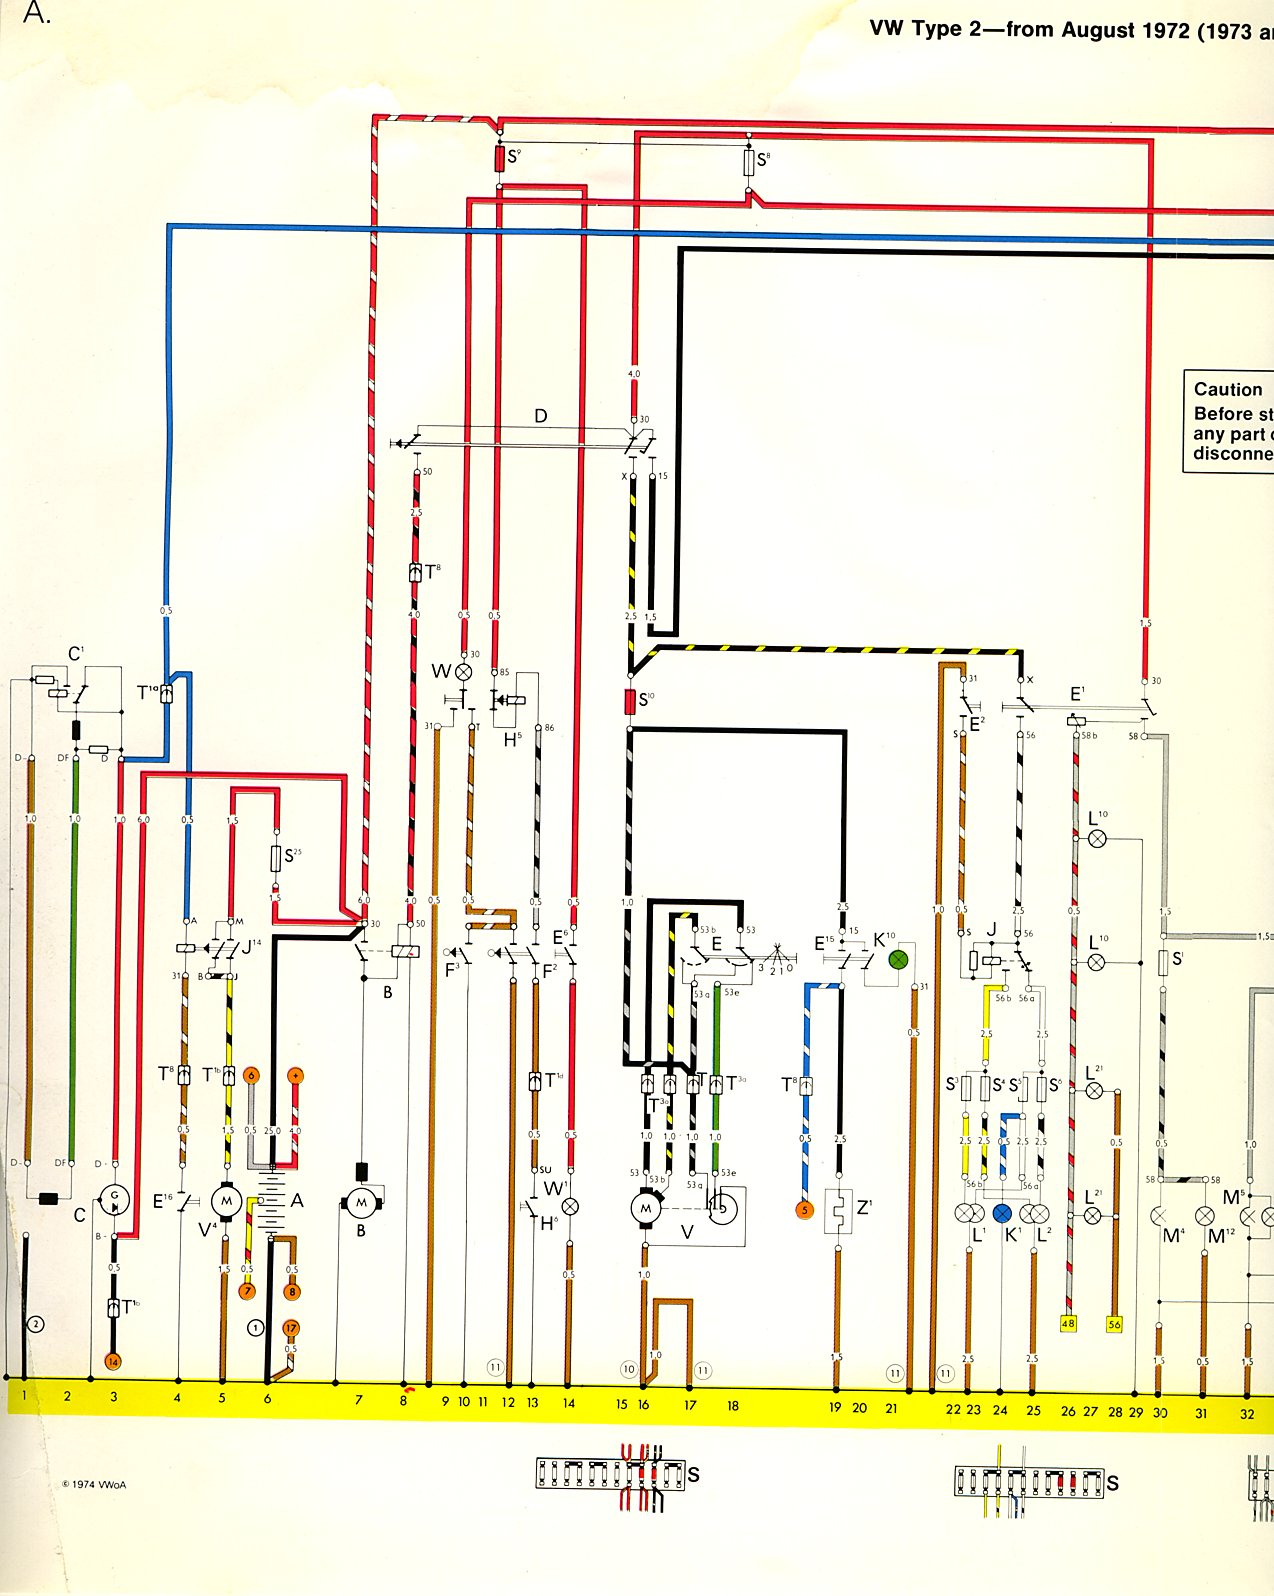 baybus_7374a vw bus wiring diagram 1965 vw bus wiring diagram \u2022 wiring diagrams 1970 vw bug wiring diagram at panicattacktreatment.co